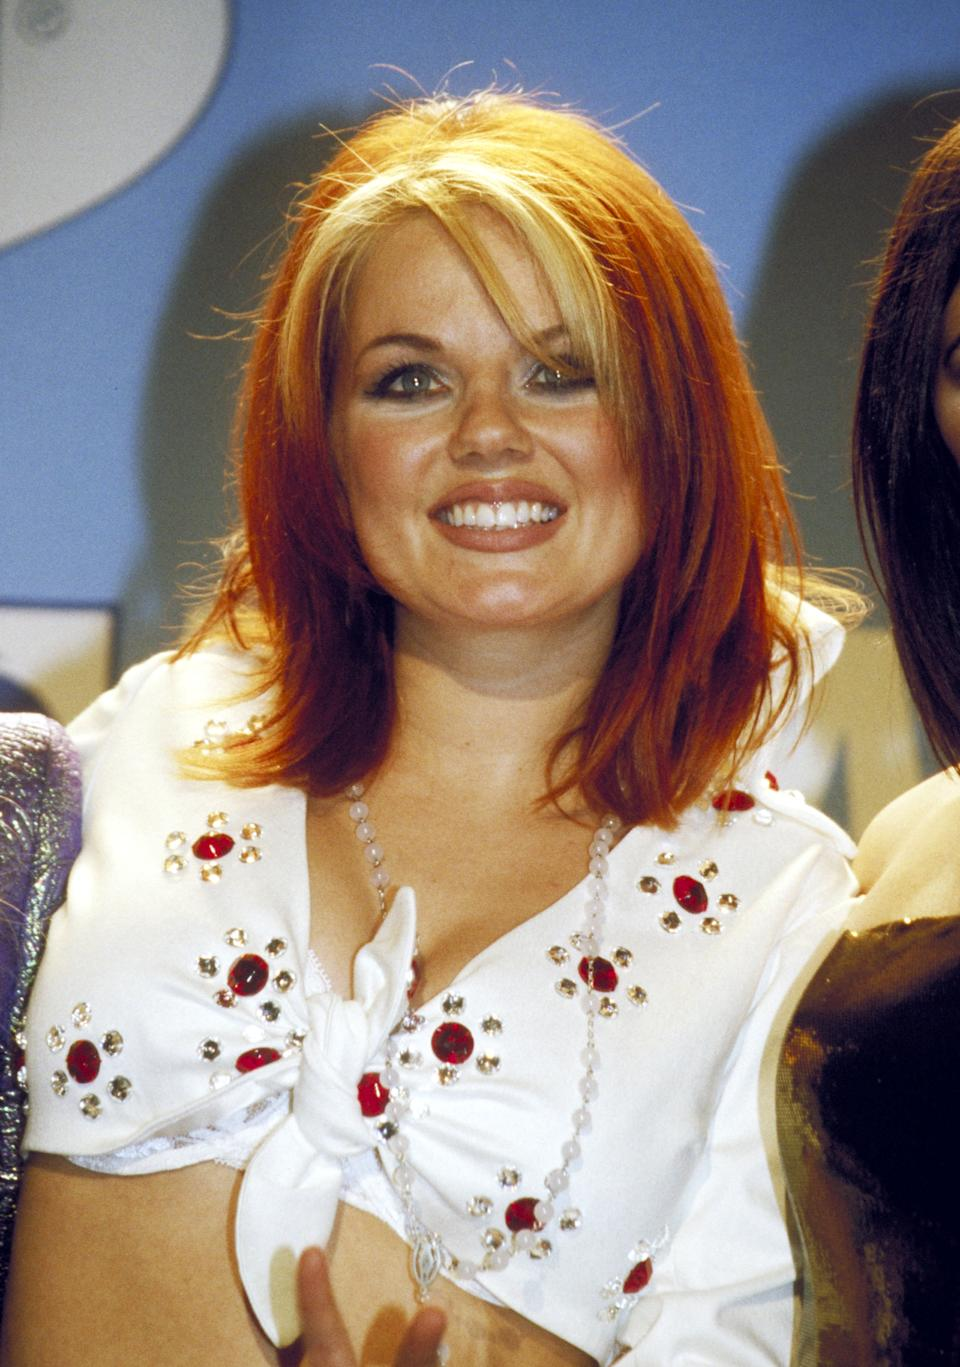 THEN: Spice Girls singer Geri Halliwell at the 1997 Billboard Music Awards. (Photo by Chris Walter/WireImage)